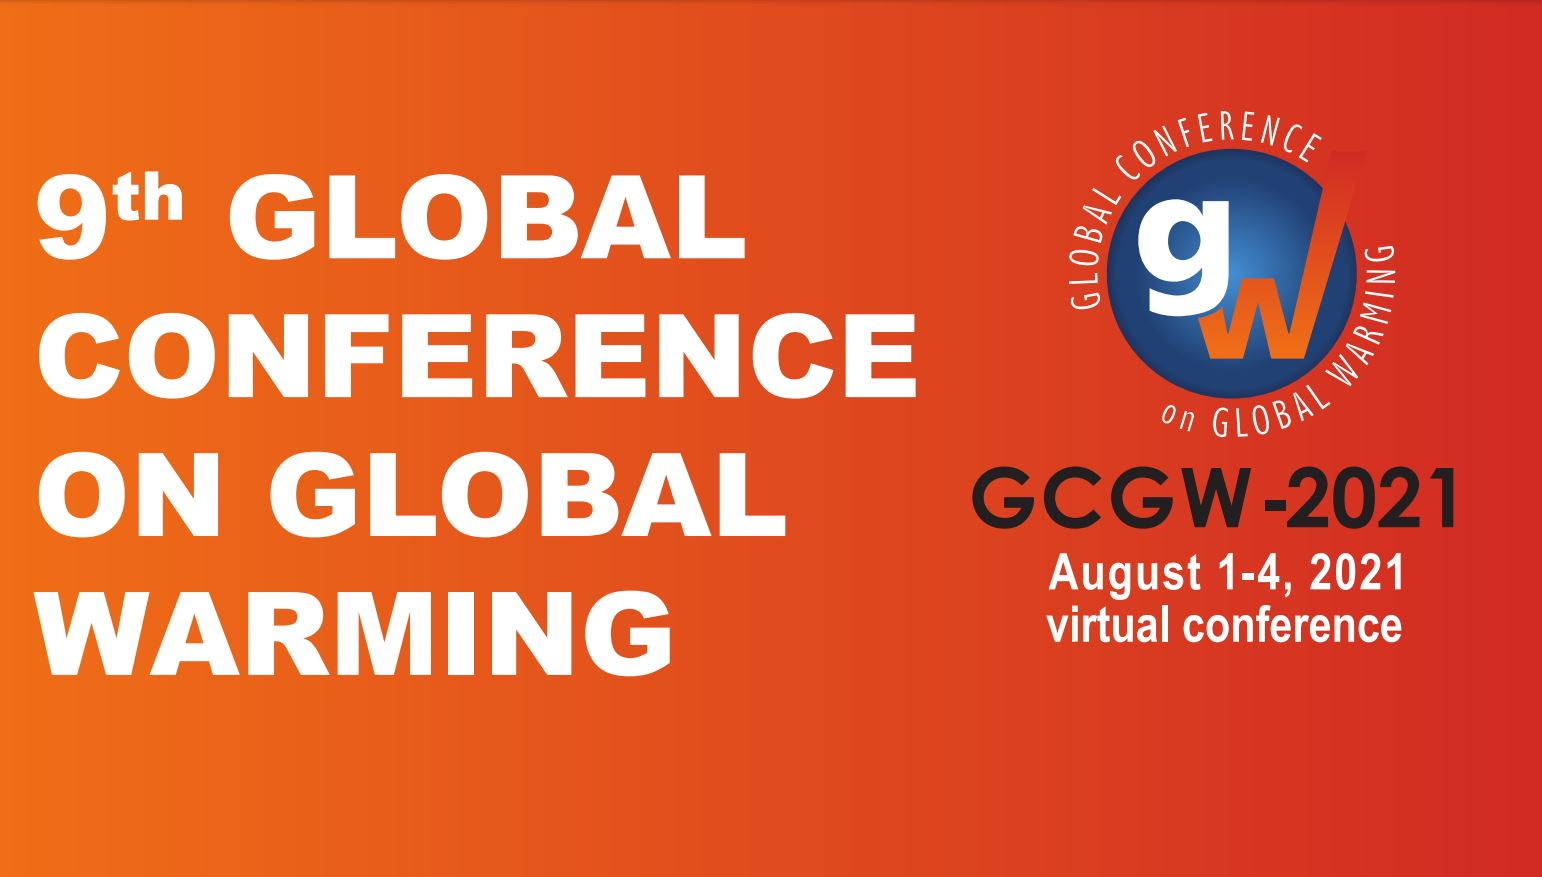 9th Global Conference on Global Warming (GCGW – 2021)